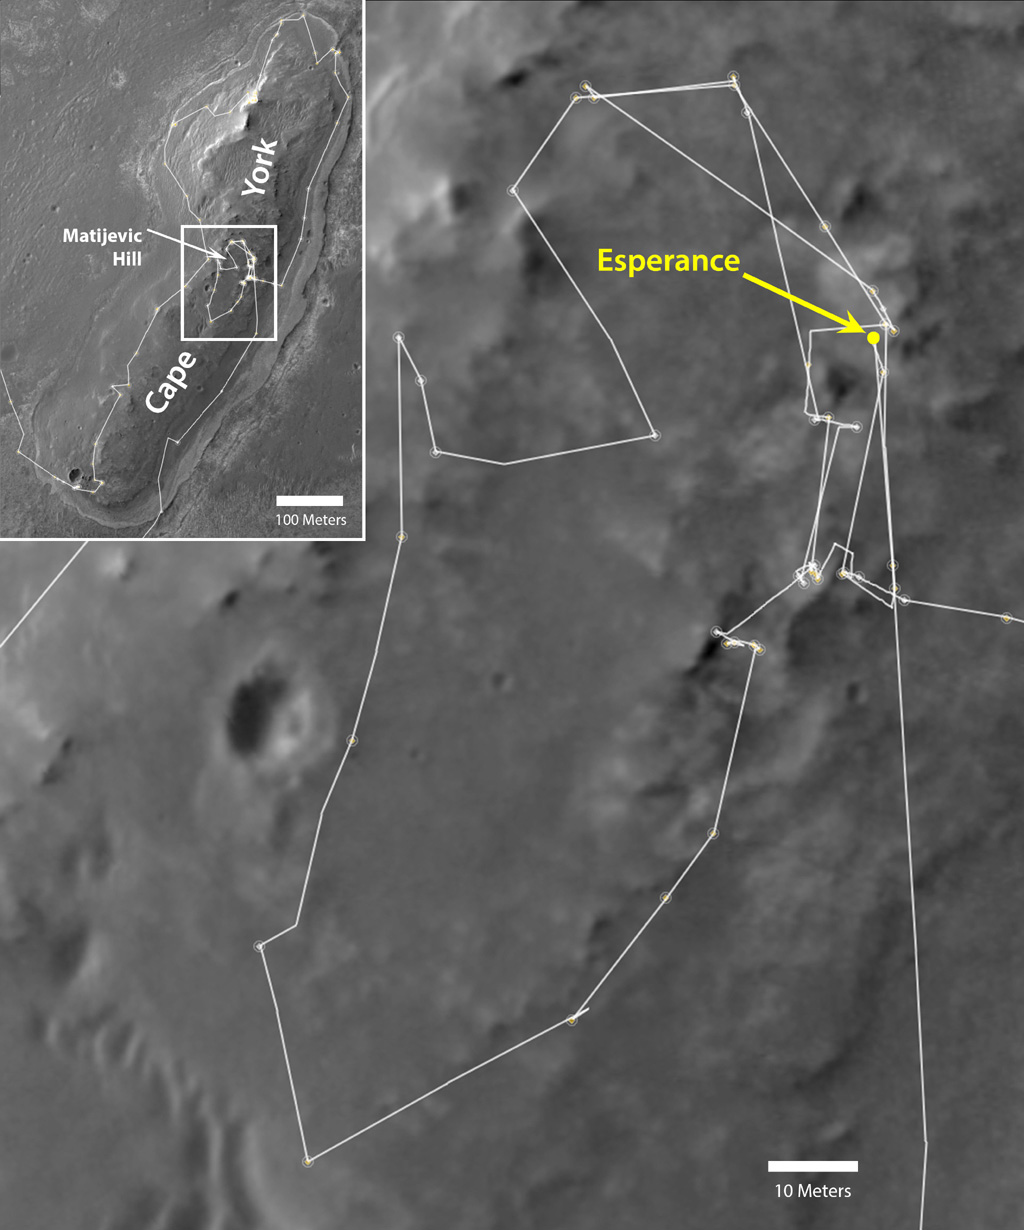 NASA's Mars Exploration Rover Opportunity drove onto the 'Cape York' segment of the rim of Endeavour Crater in August 2011 and departed Cape York in May 2013. The location of a rock target called 'Esperance' is indicated in the main map.